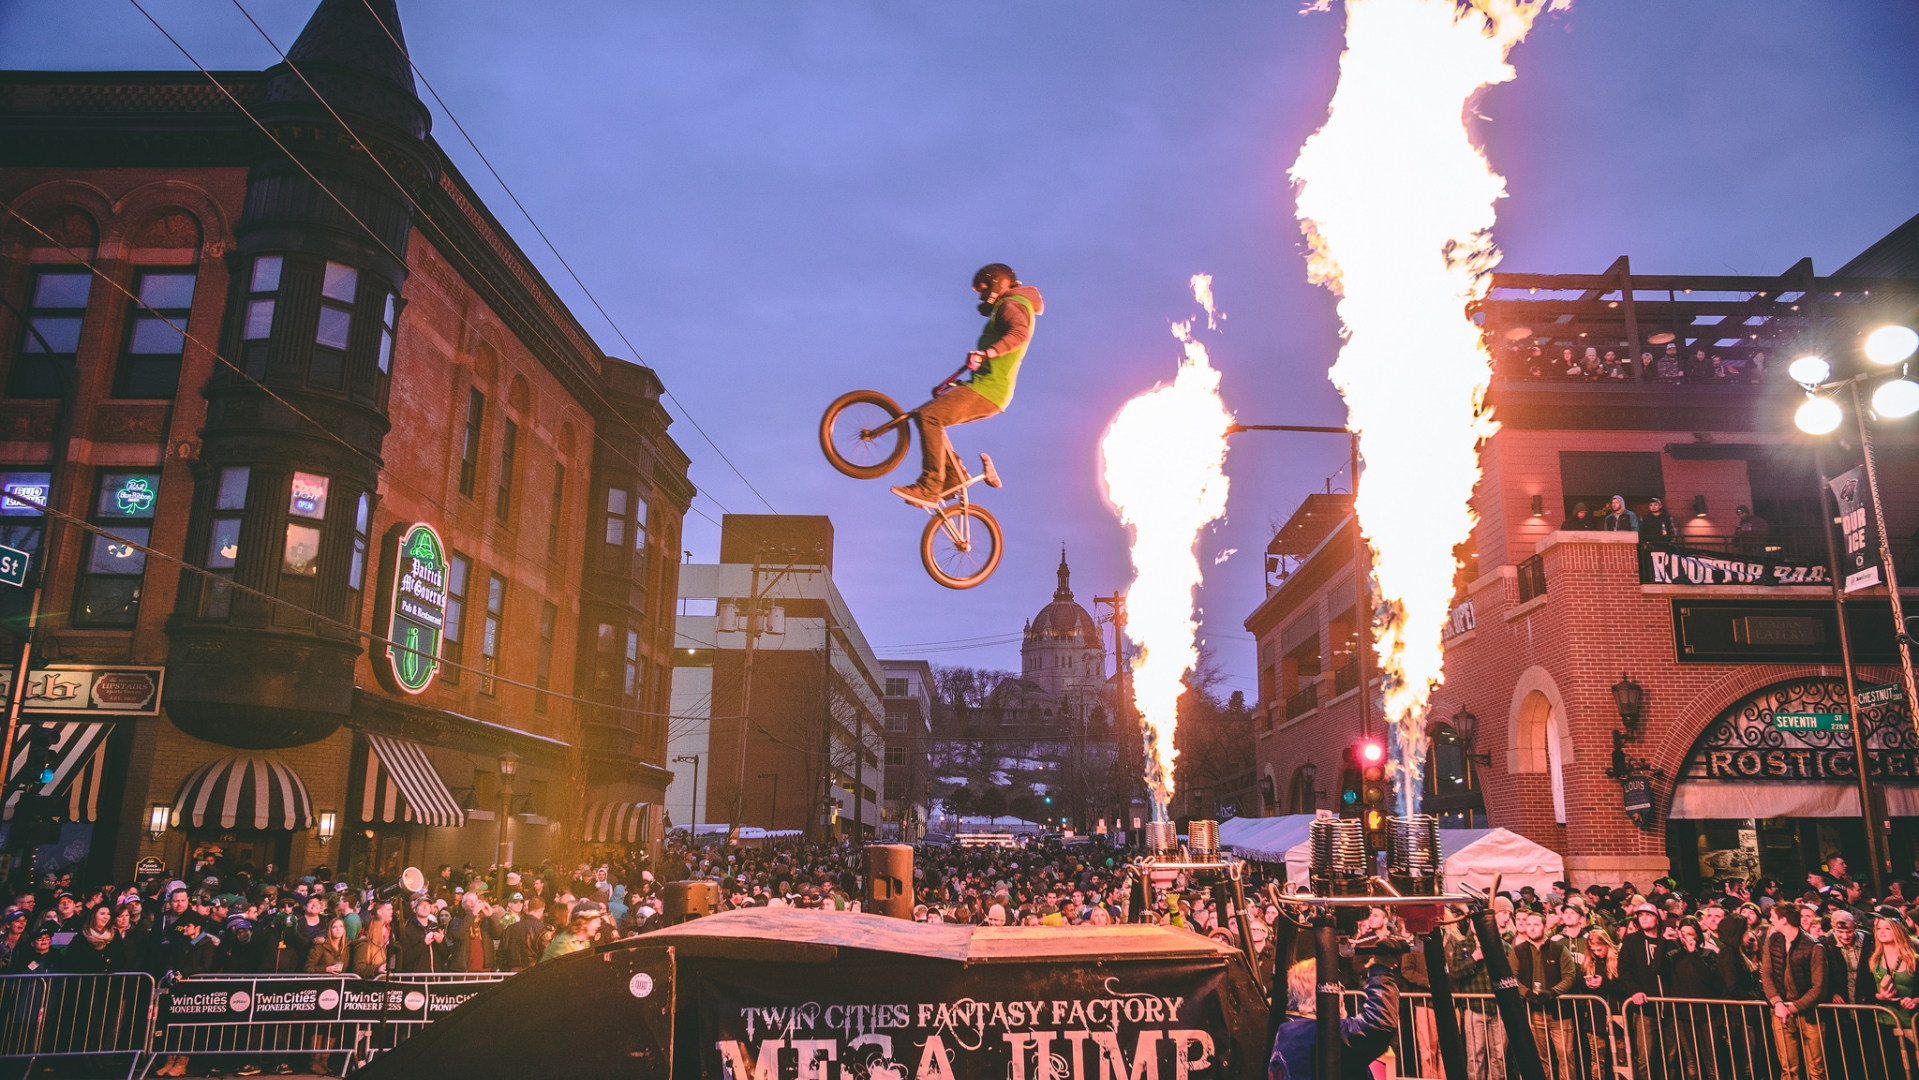 Check out the crazy stunts with fire from Ride MN